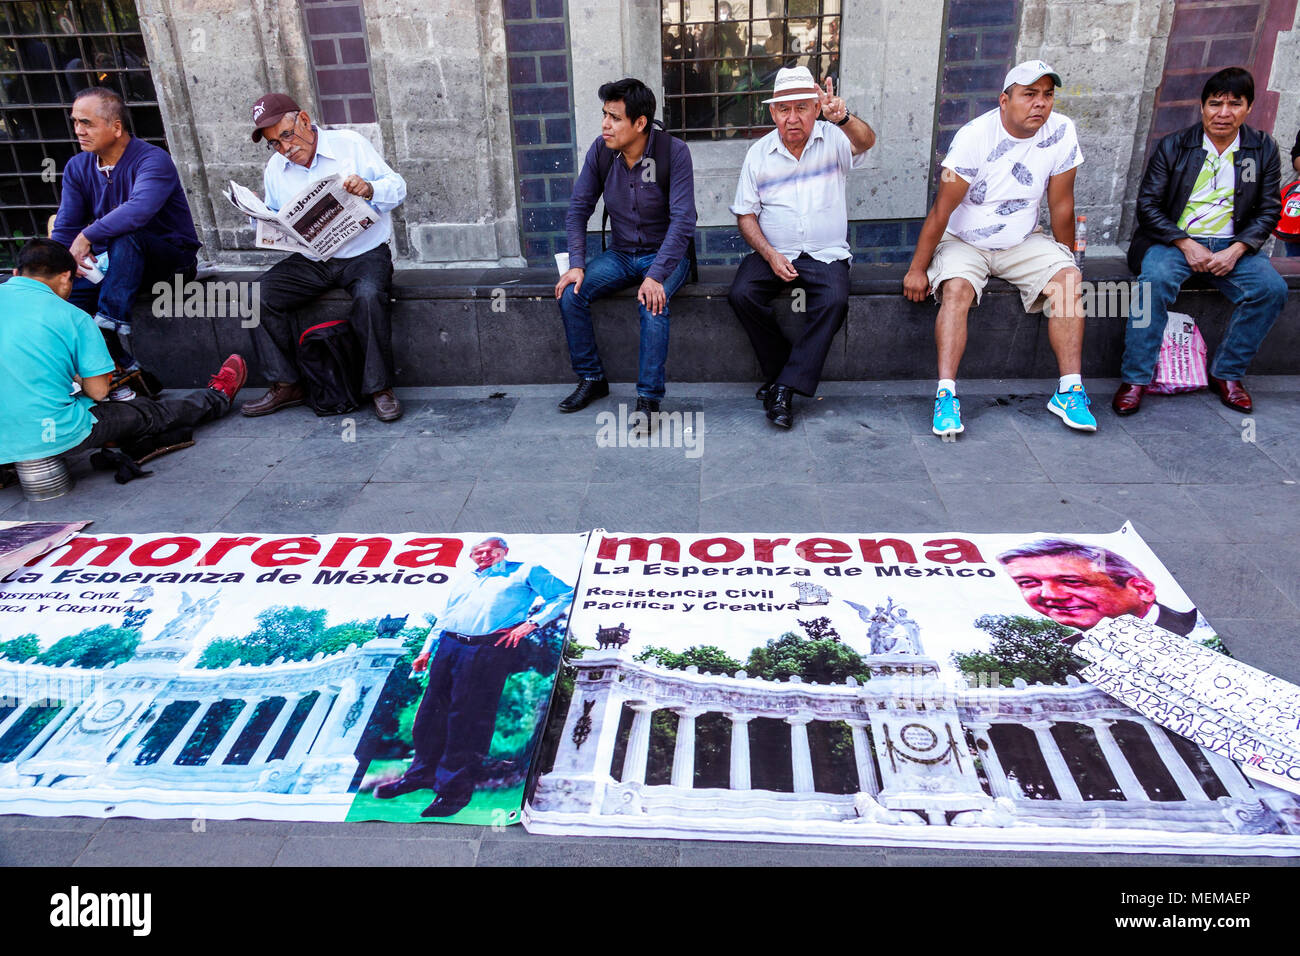 Mexico City Mexico Ciudad de Federal District Distrito DF D.F. CDMX Mexican Hispanic Centro Historico Historic Center Centre Avenida Juarez leftist political rally Movimiento Regeneracion Nacional Morena poster Lopez Obrador candidate man North America American - Stock Image